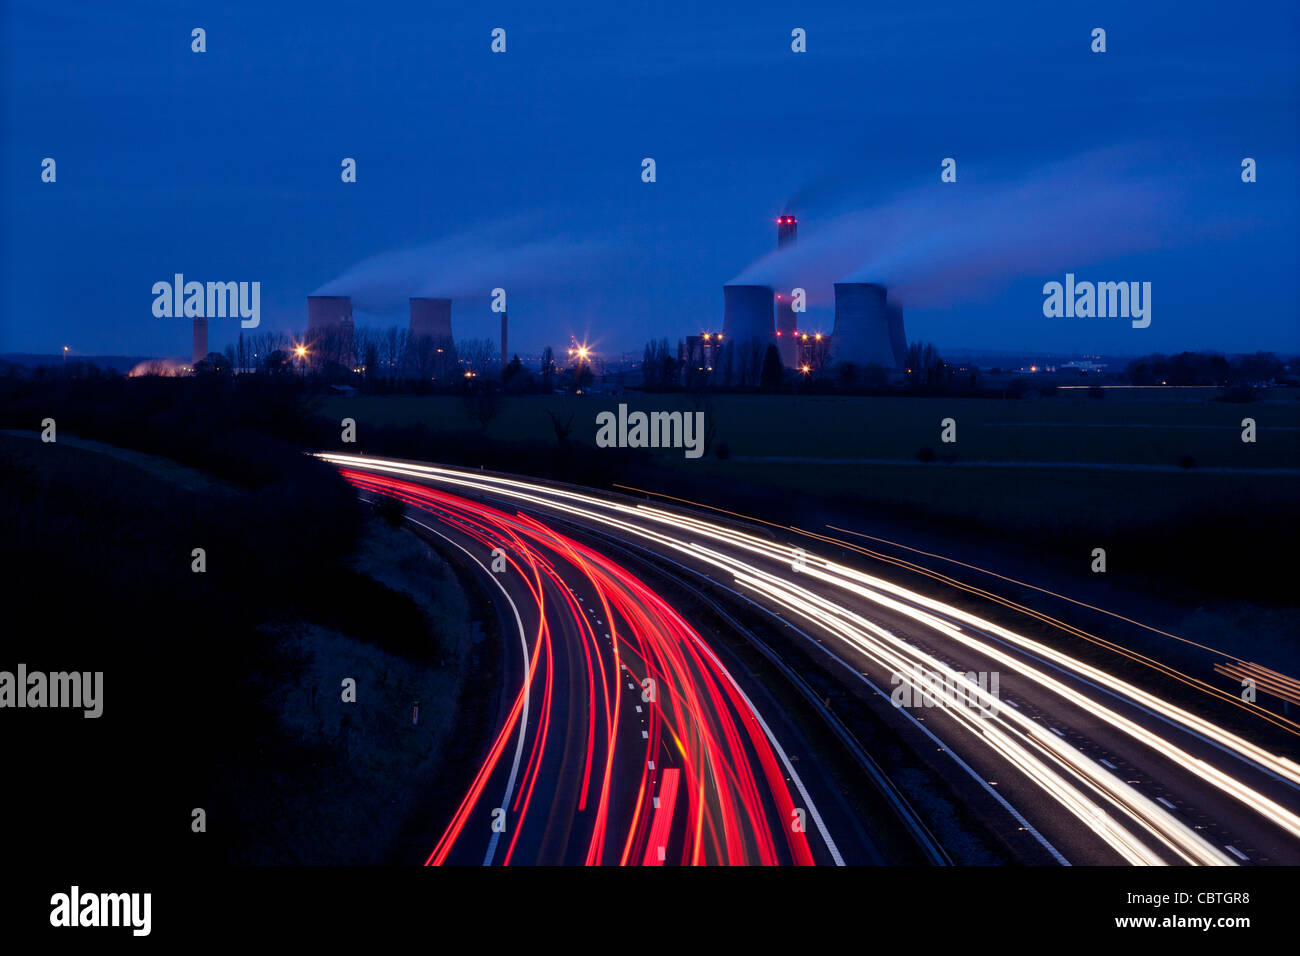 Traffic at night running past a coal fired electricity generating power station, Didcot, oxon, uk - Stock Image